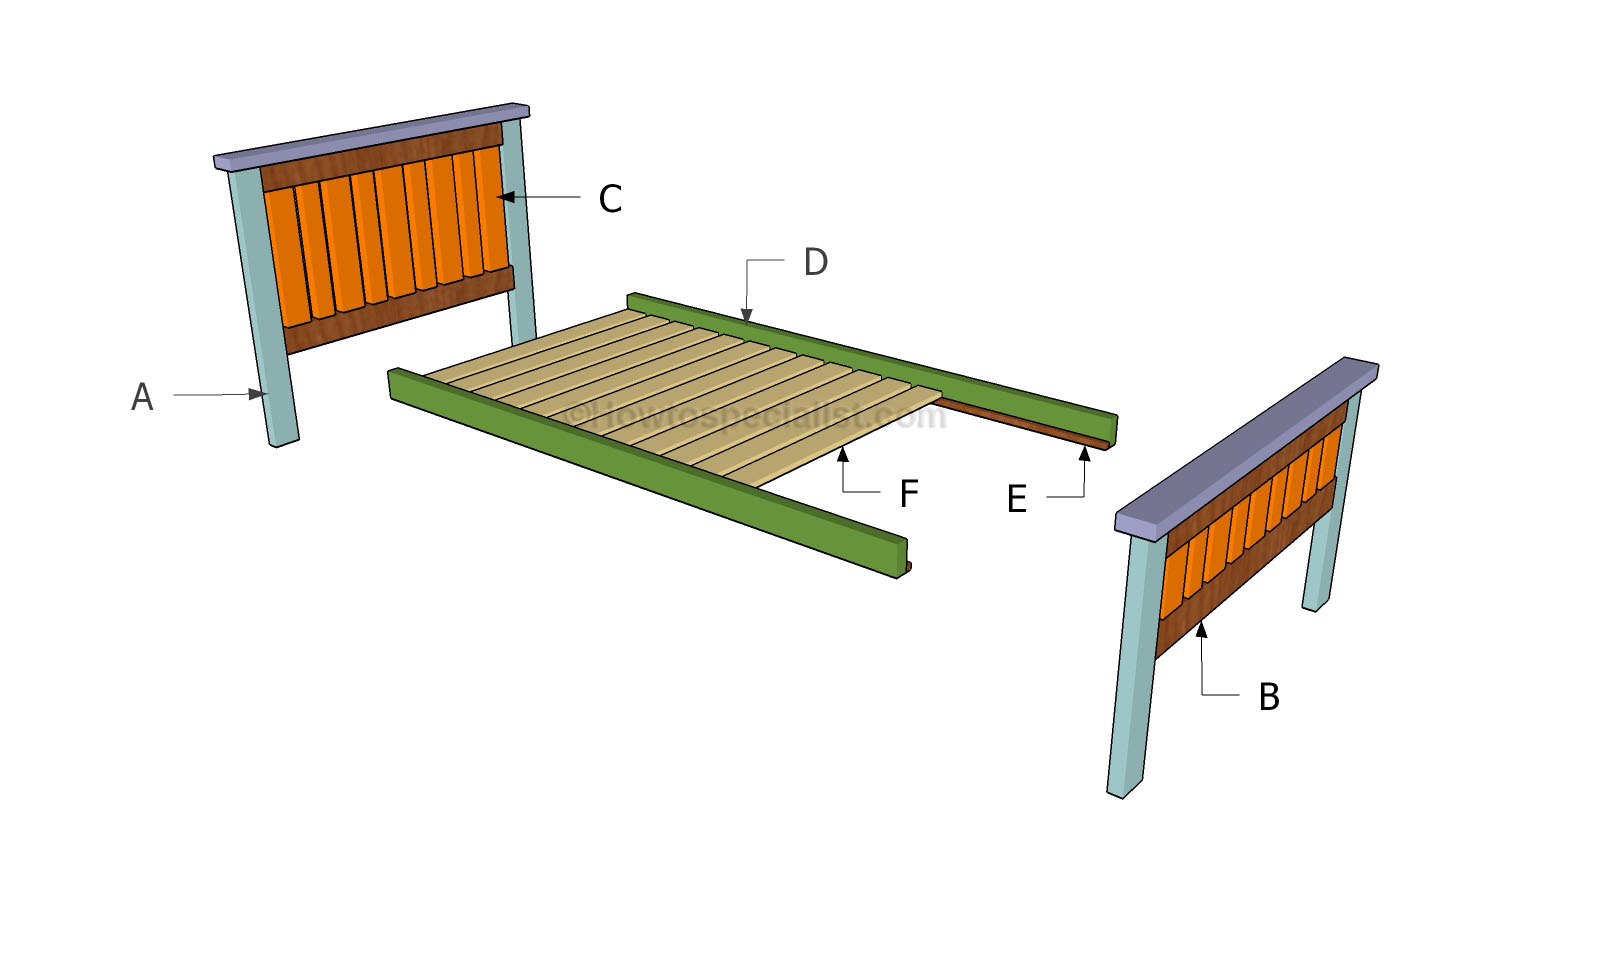 Building the 2x4 bed